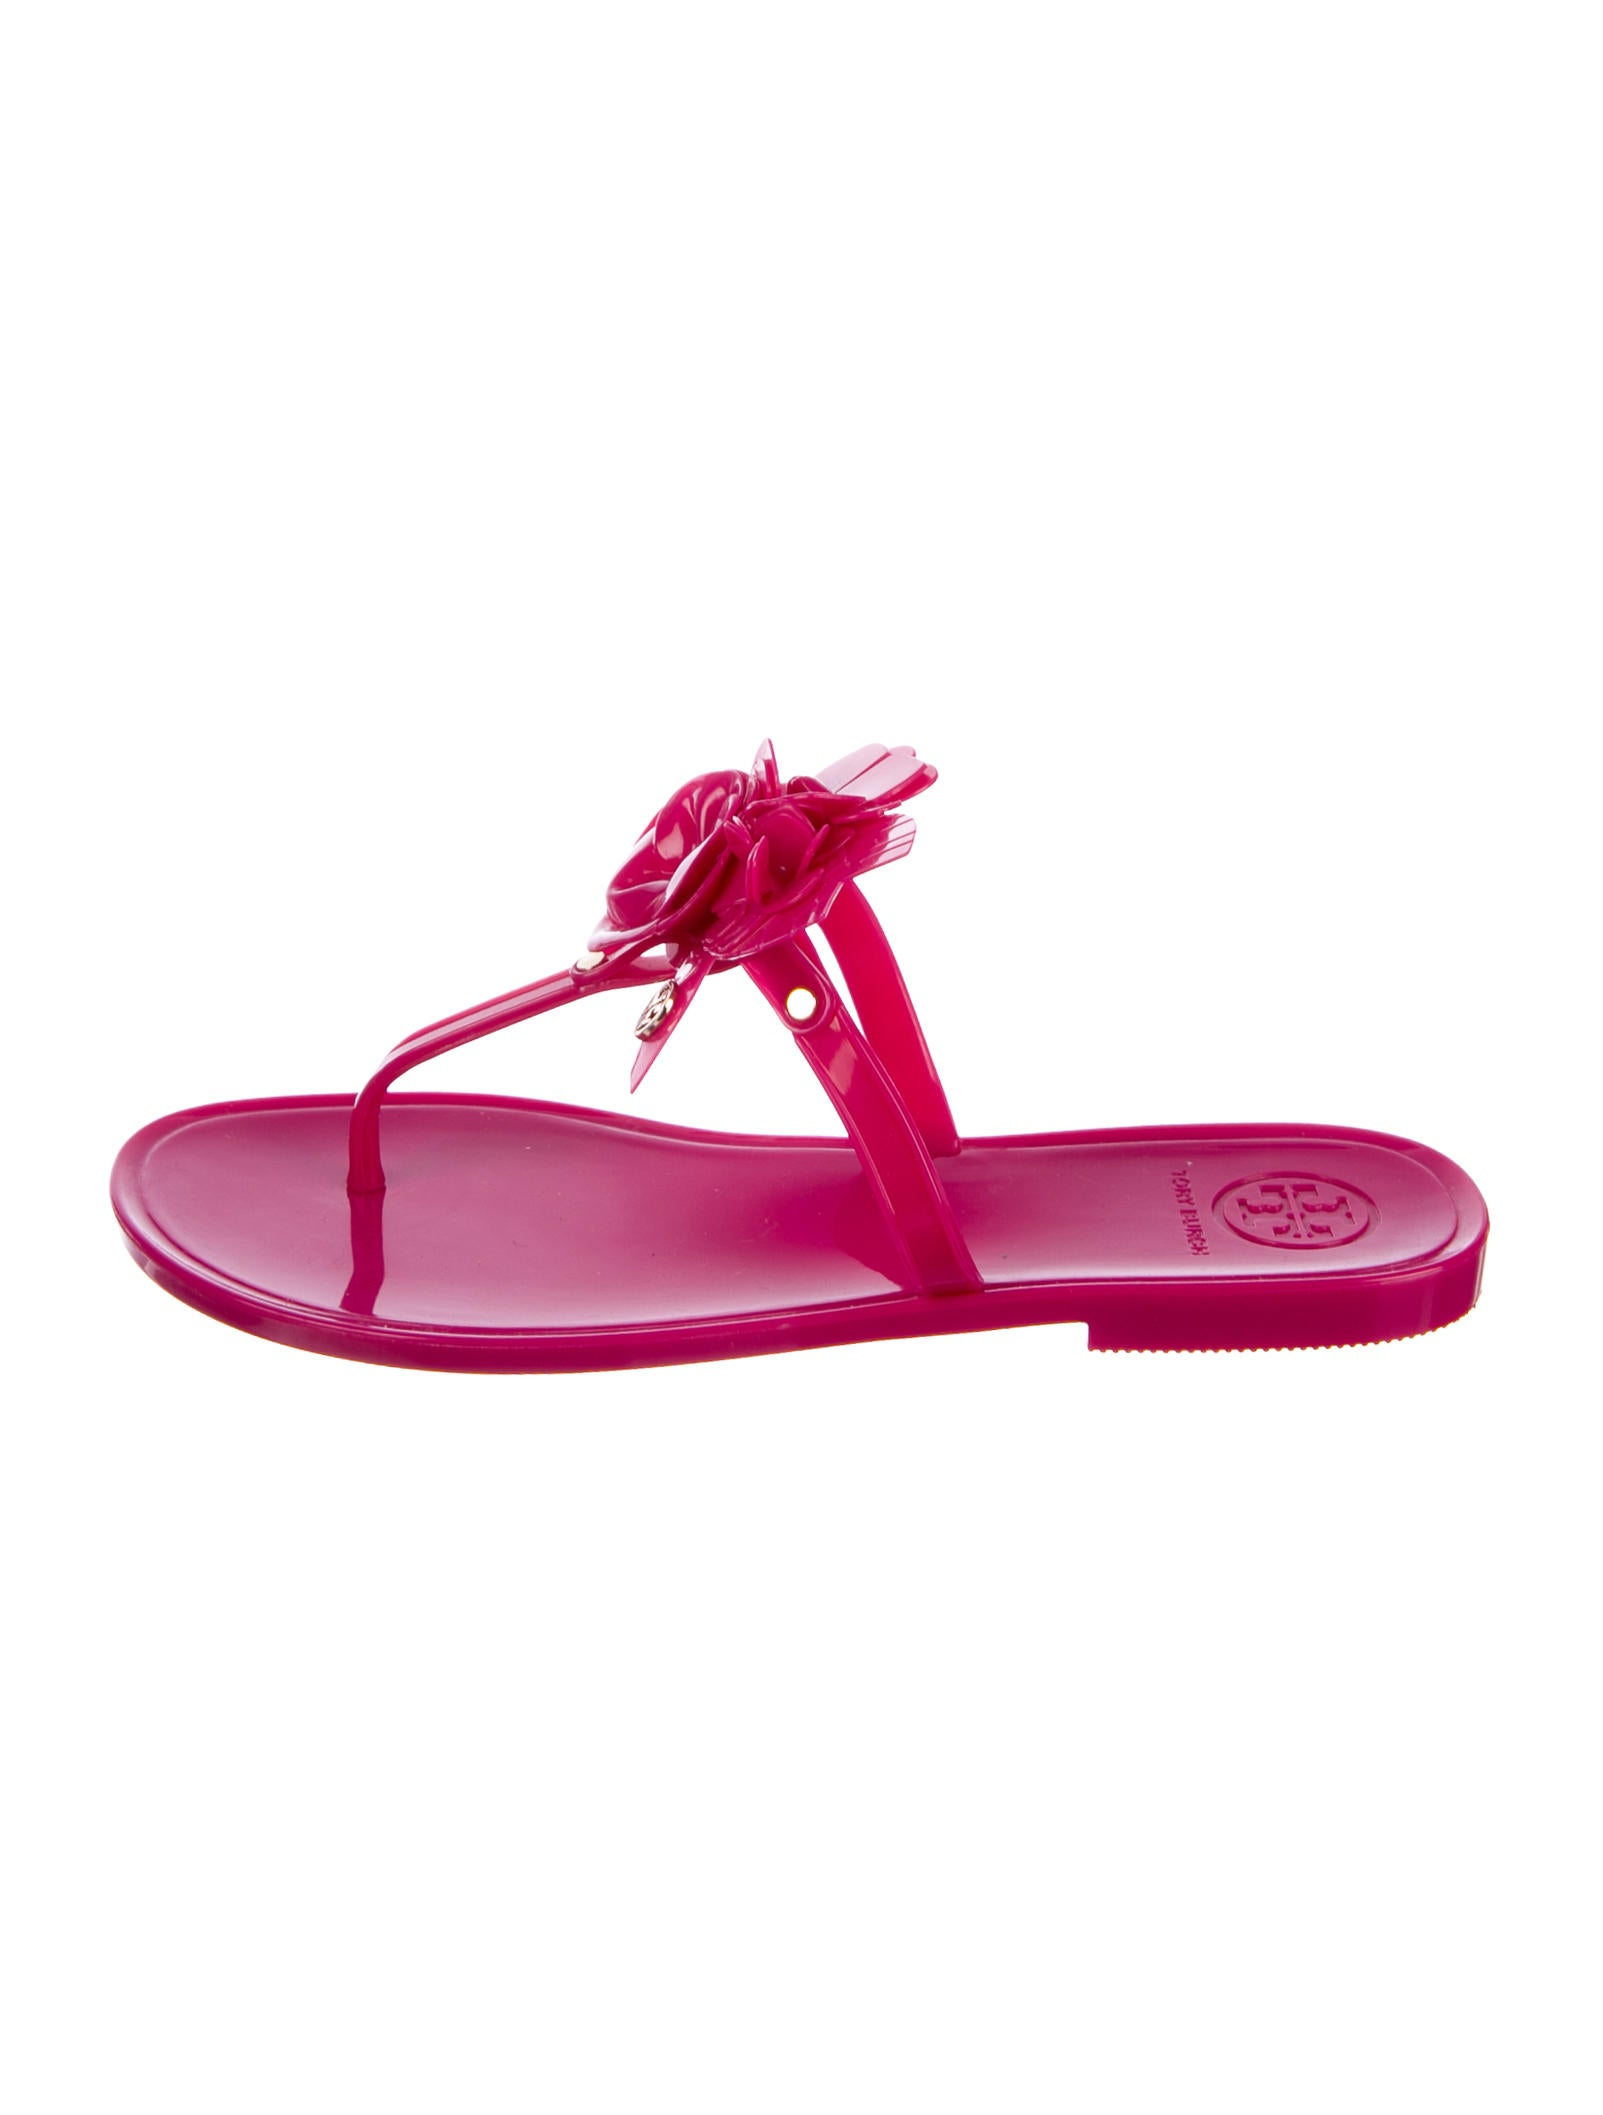 db007e00b8a6f8 Tory Burch Blossom Rubber Sandals w  Tags - Shoes - WTO124719